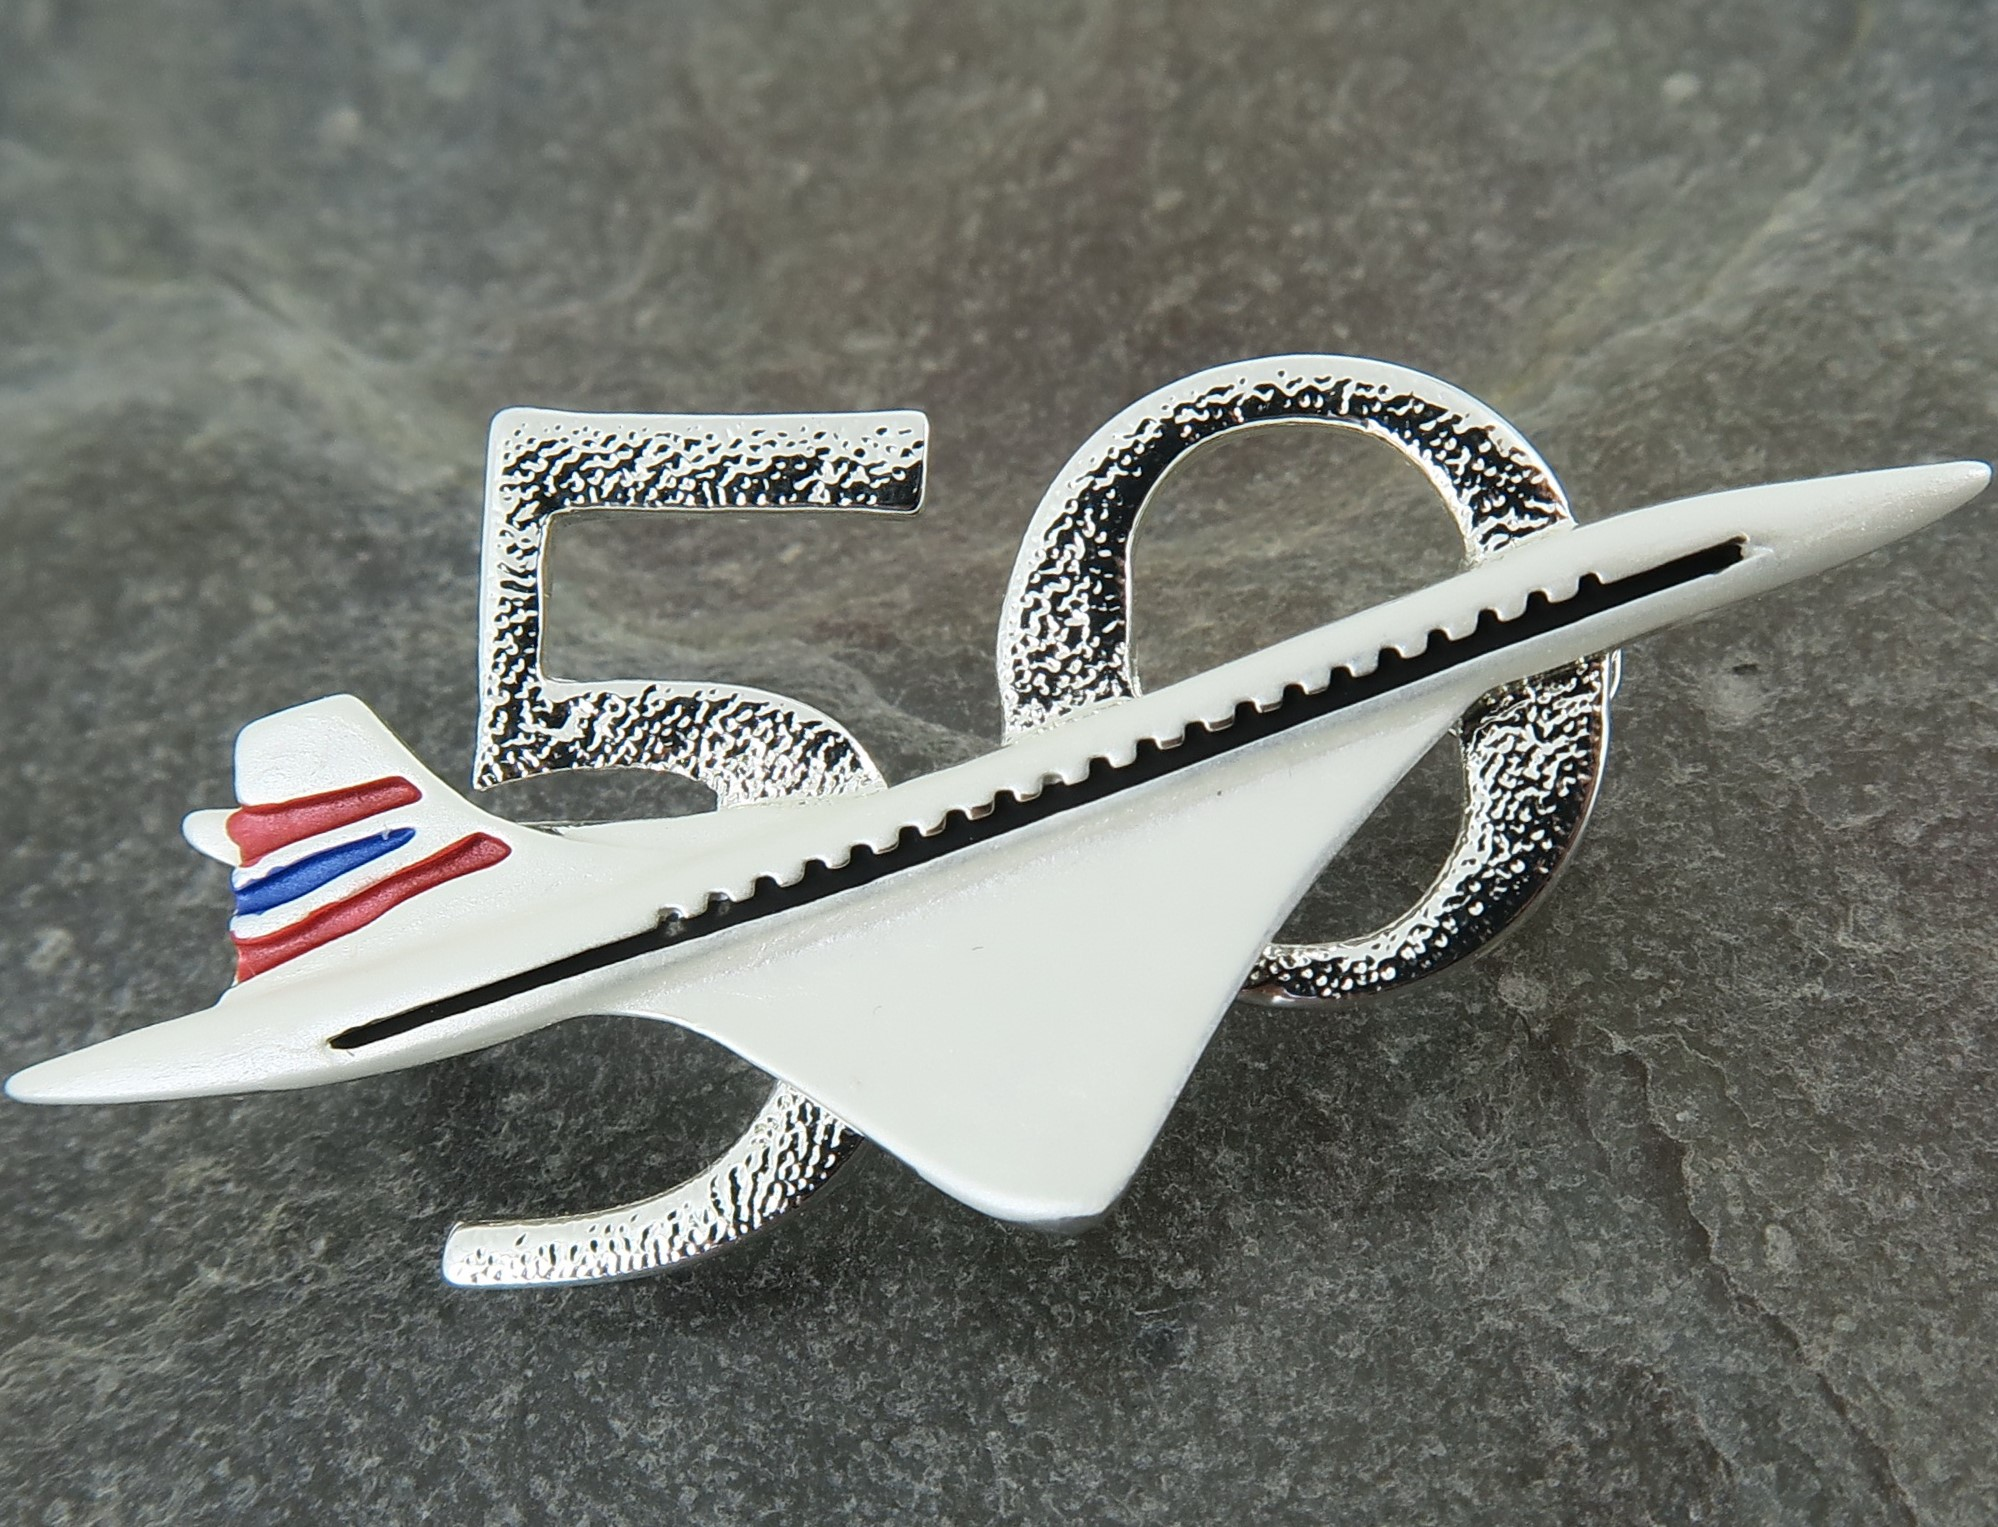 - Celebrate the 50th Anniversary of the 1st British flight of Concorde, with this specially made enamel/silver brooch, available for just £6.50